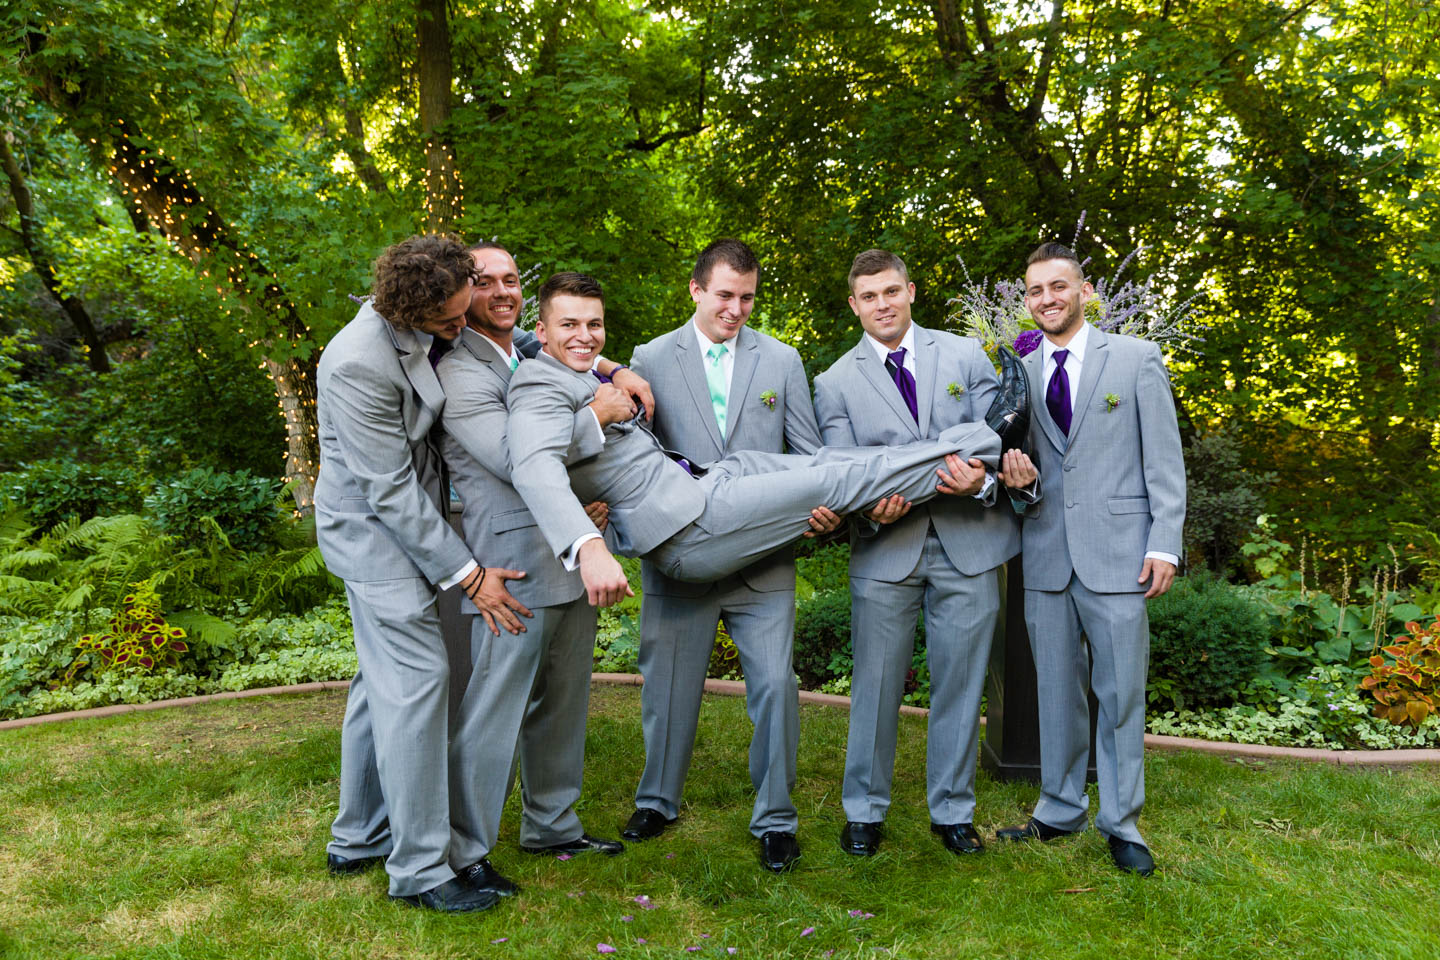 Groomsmen hold the groom for a fun shot